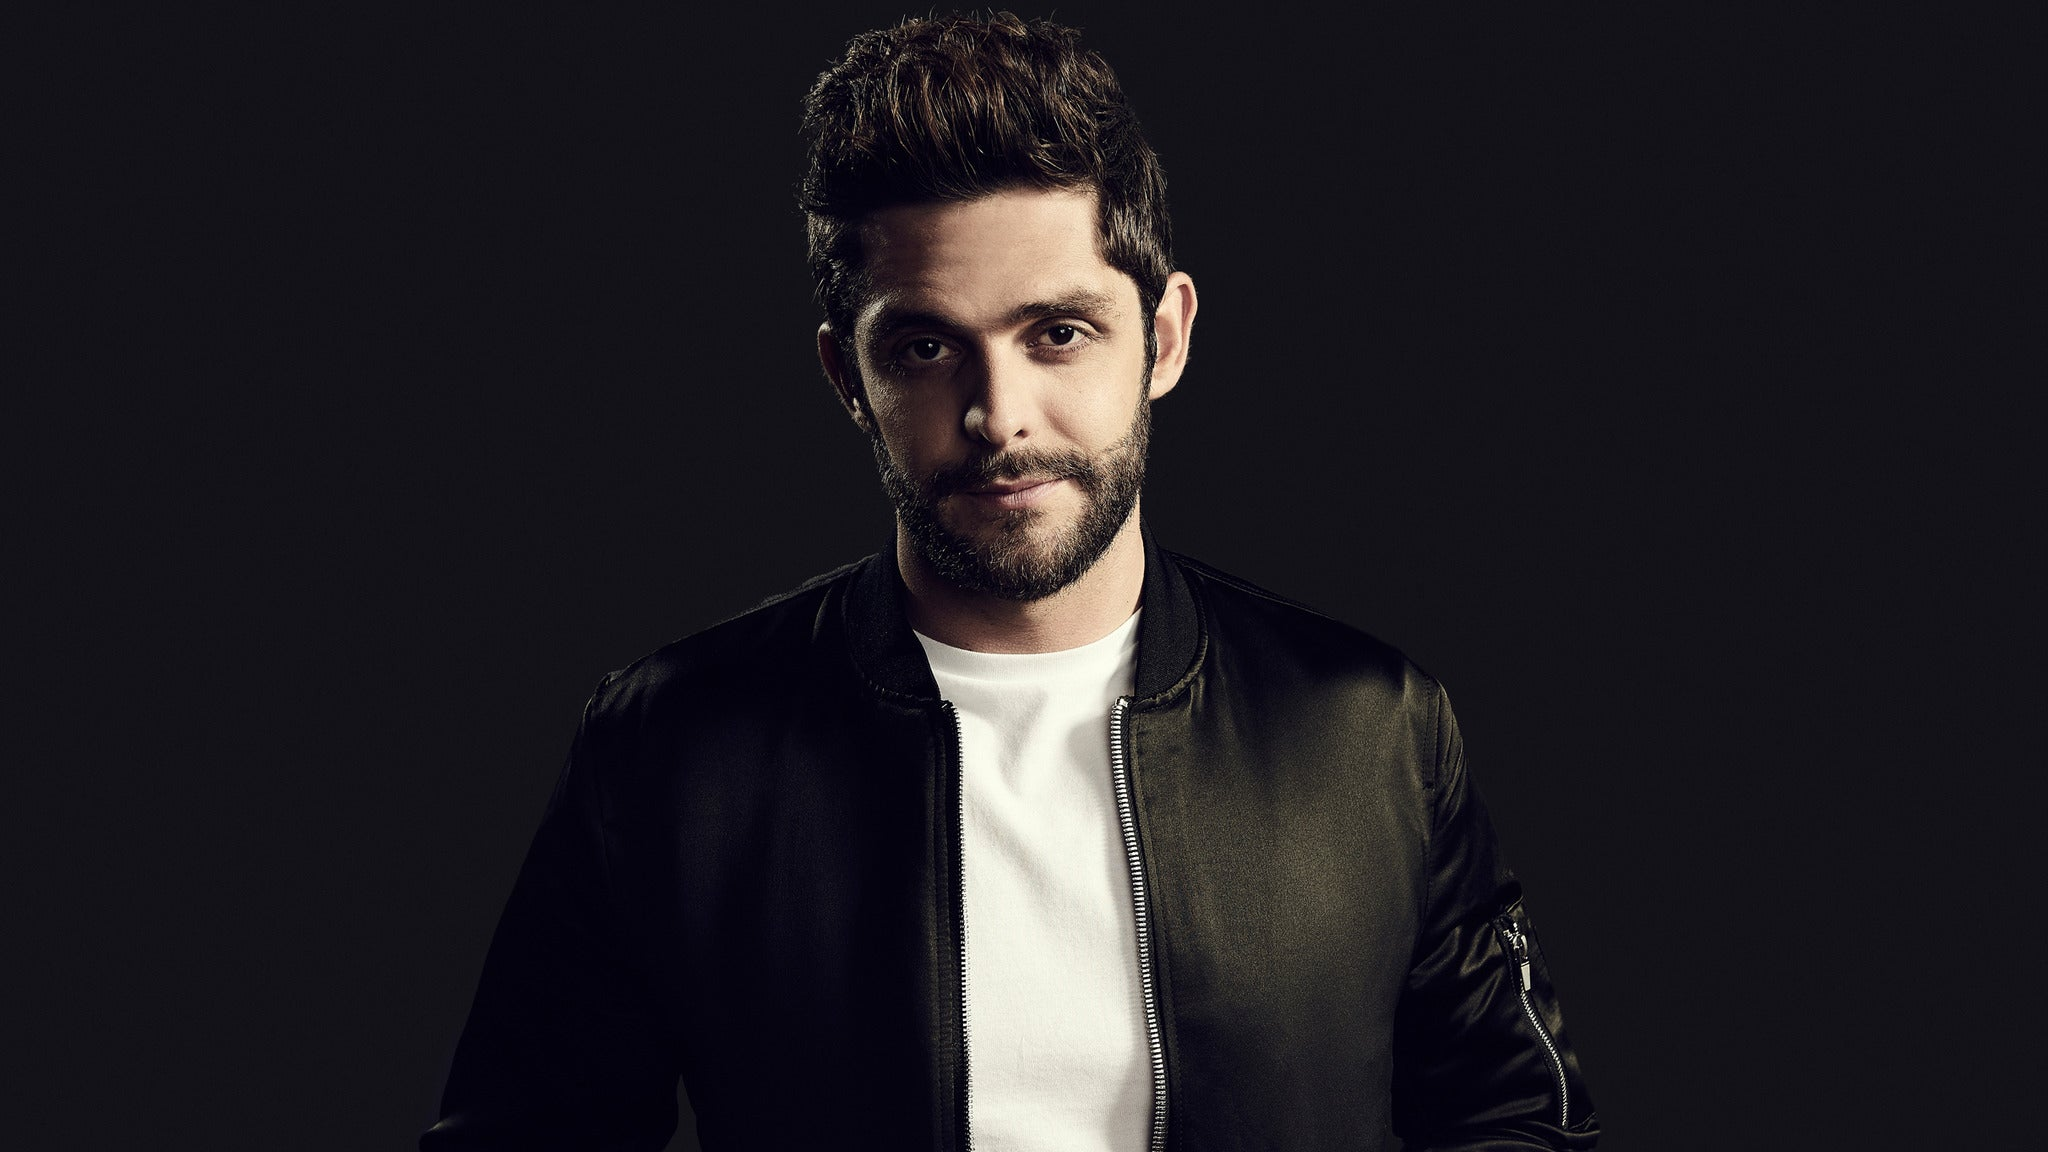 Thomas Rhett: Home Team Tour 2017 at Pensacola Bay Center